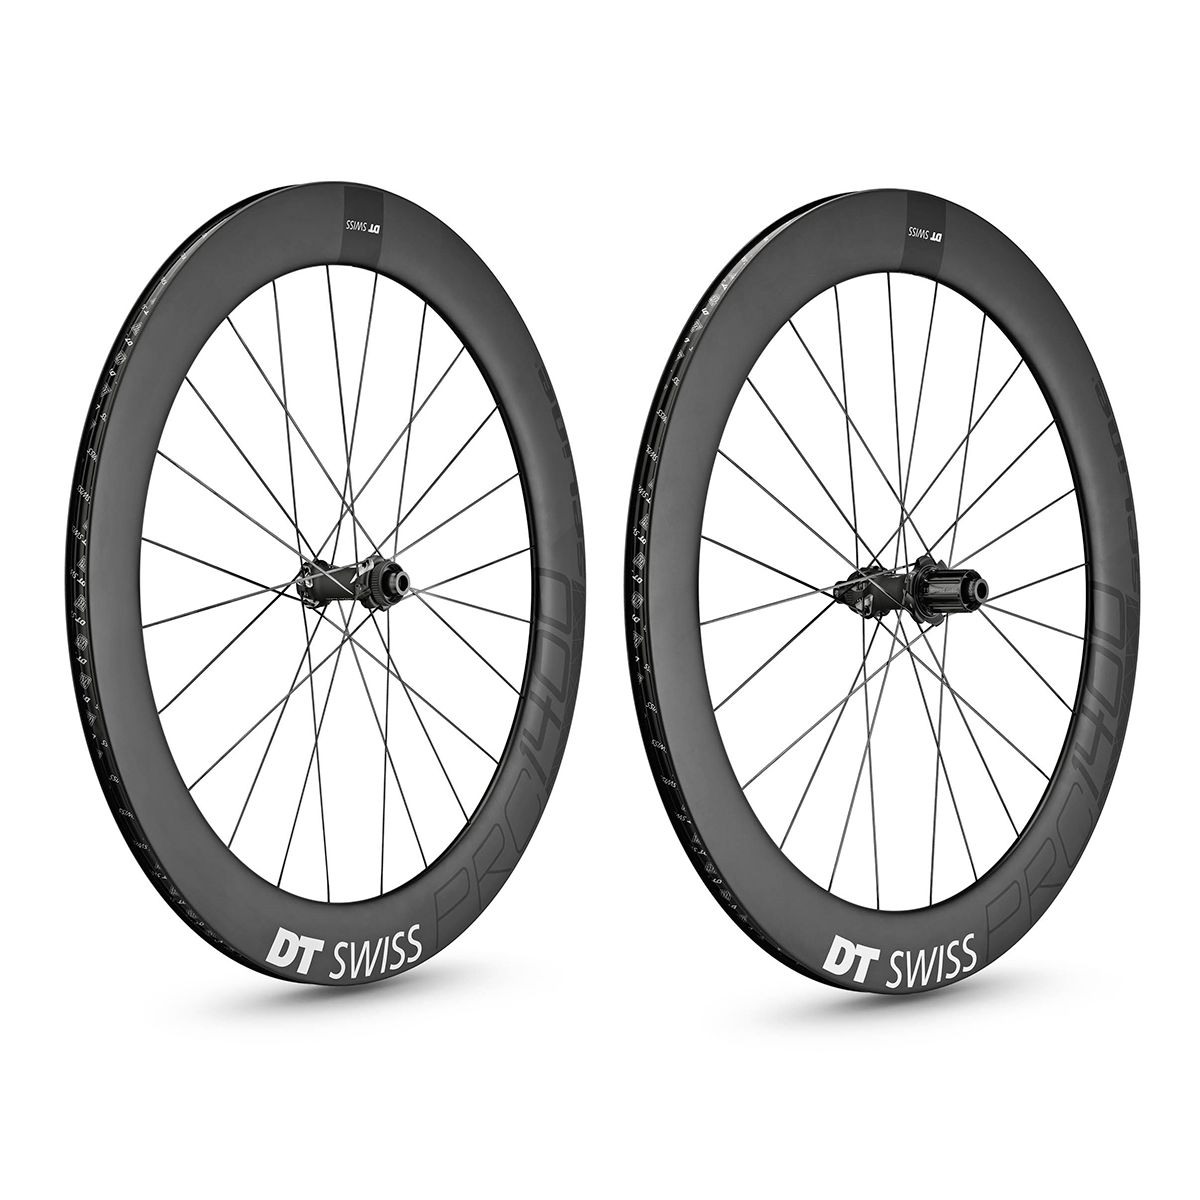 PRC 1400 Spline® 65 DB Carbon Road Wheels 28